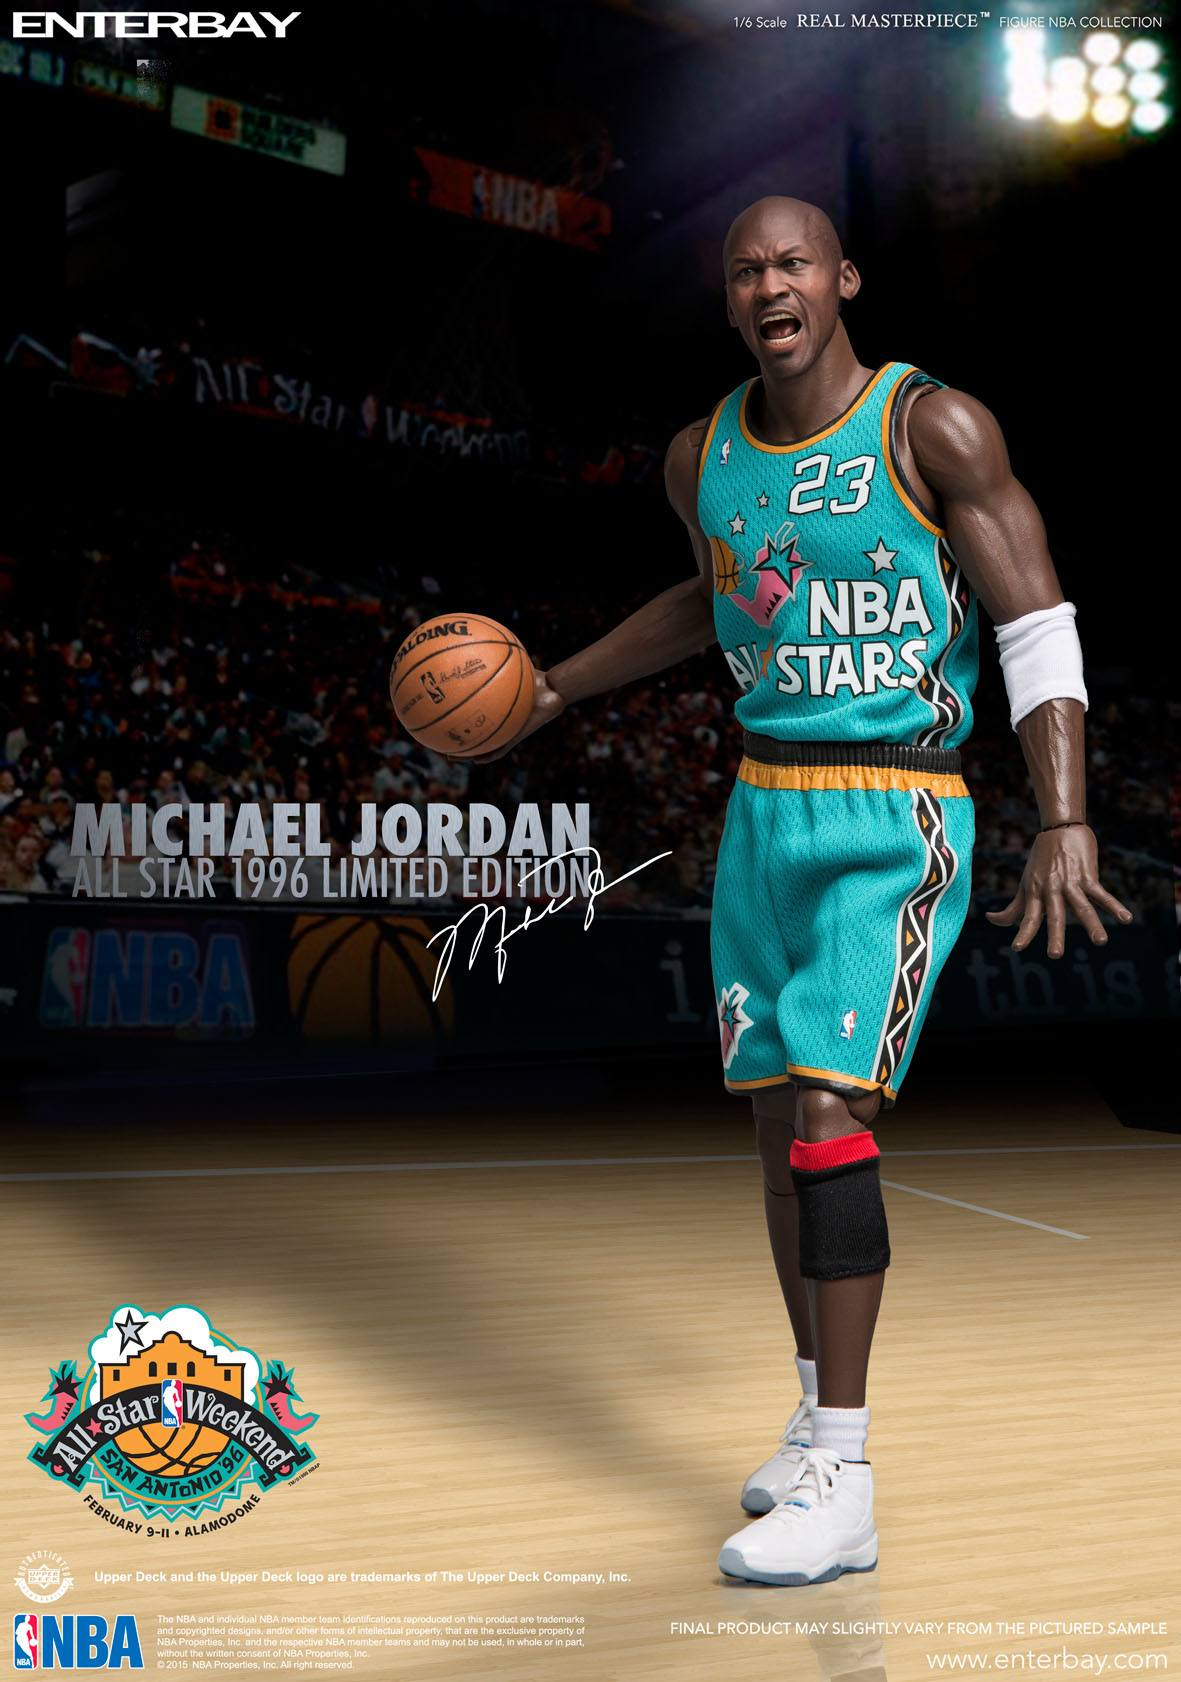 NBA Collection Real Masterpiece Actionfigur 1/6 Michael Jordan (All Star Game 1996) 33 cm